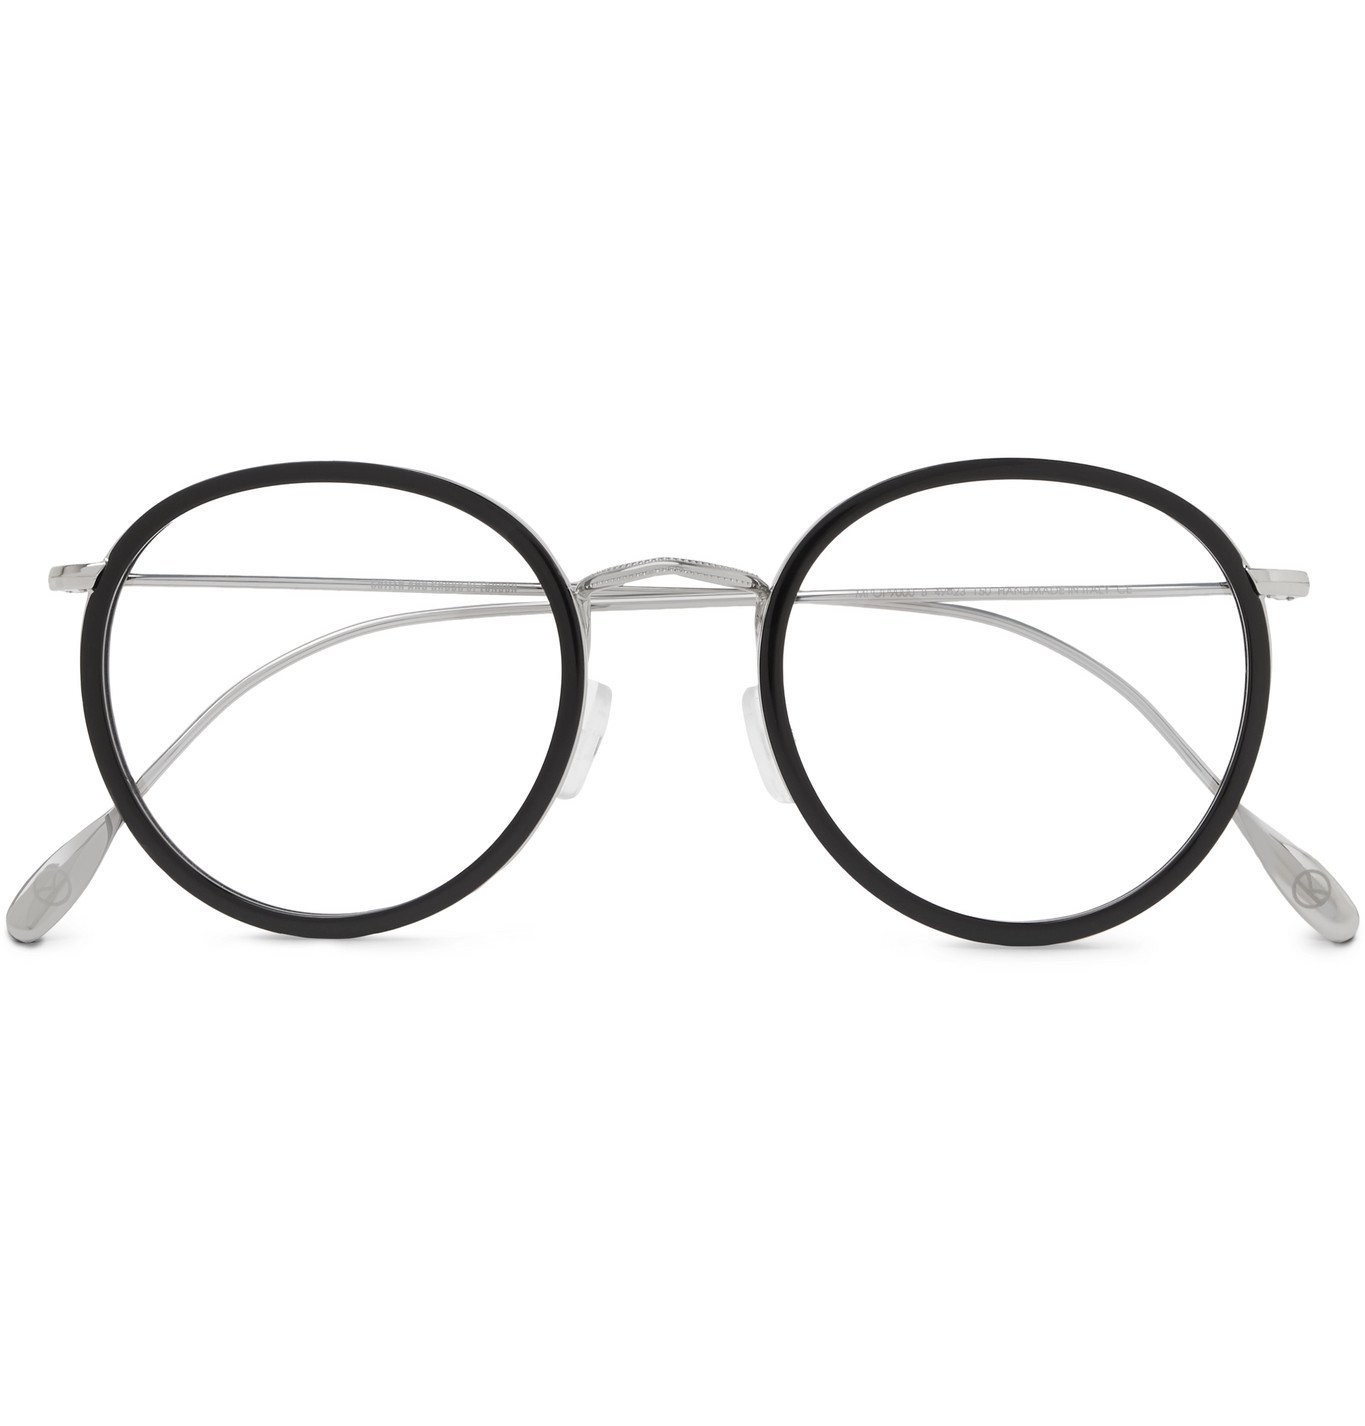 Photo: Kingsman - Cutler and Gross Round-Frame Acetate and Silver-Tone Optical Glasses - Black